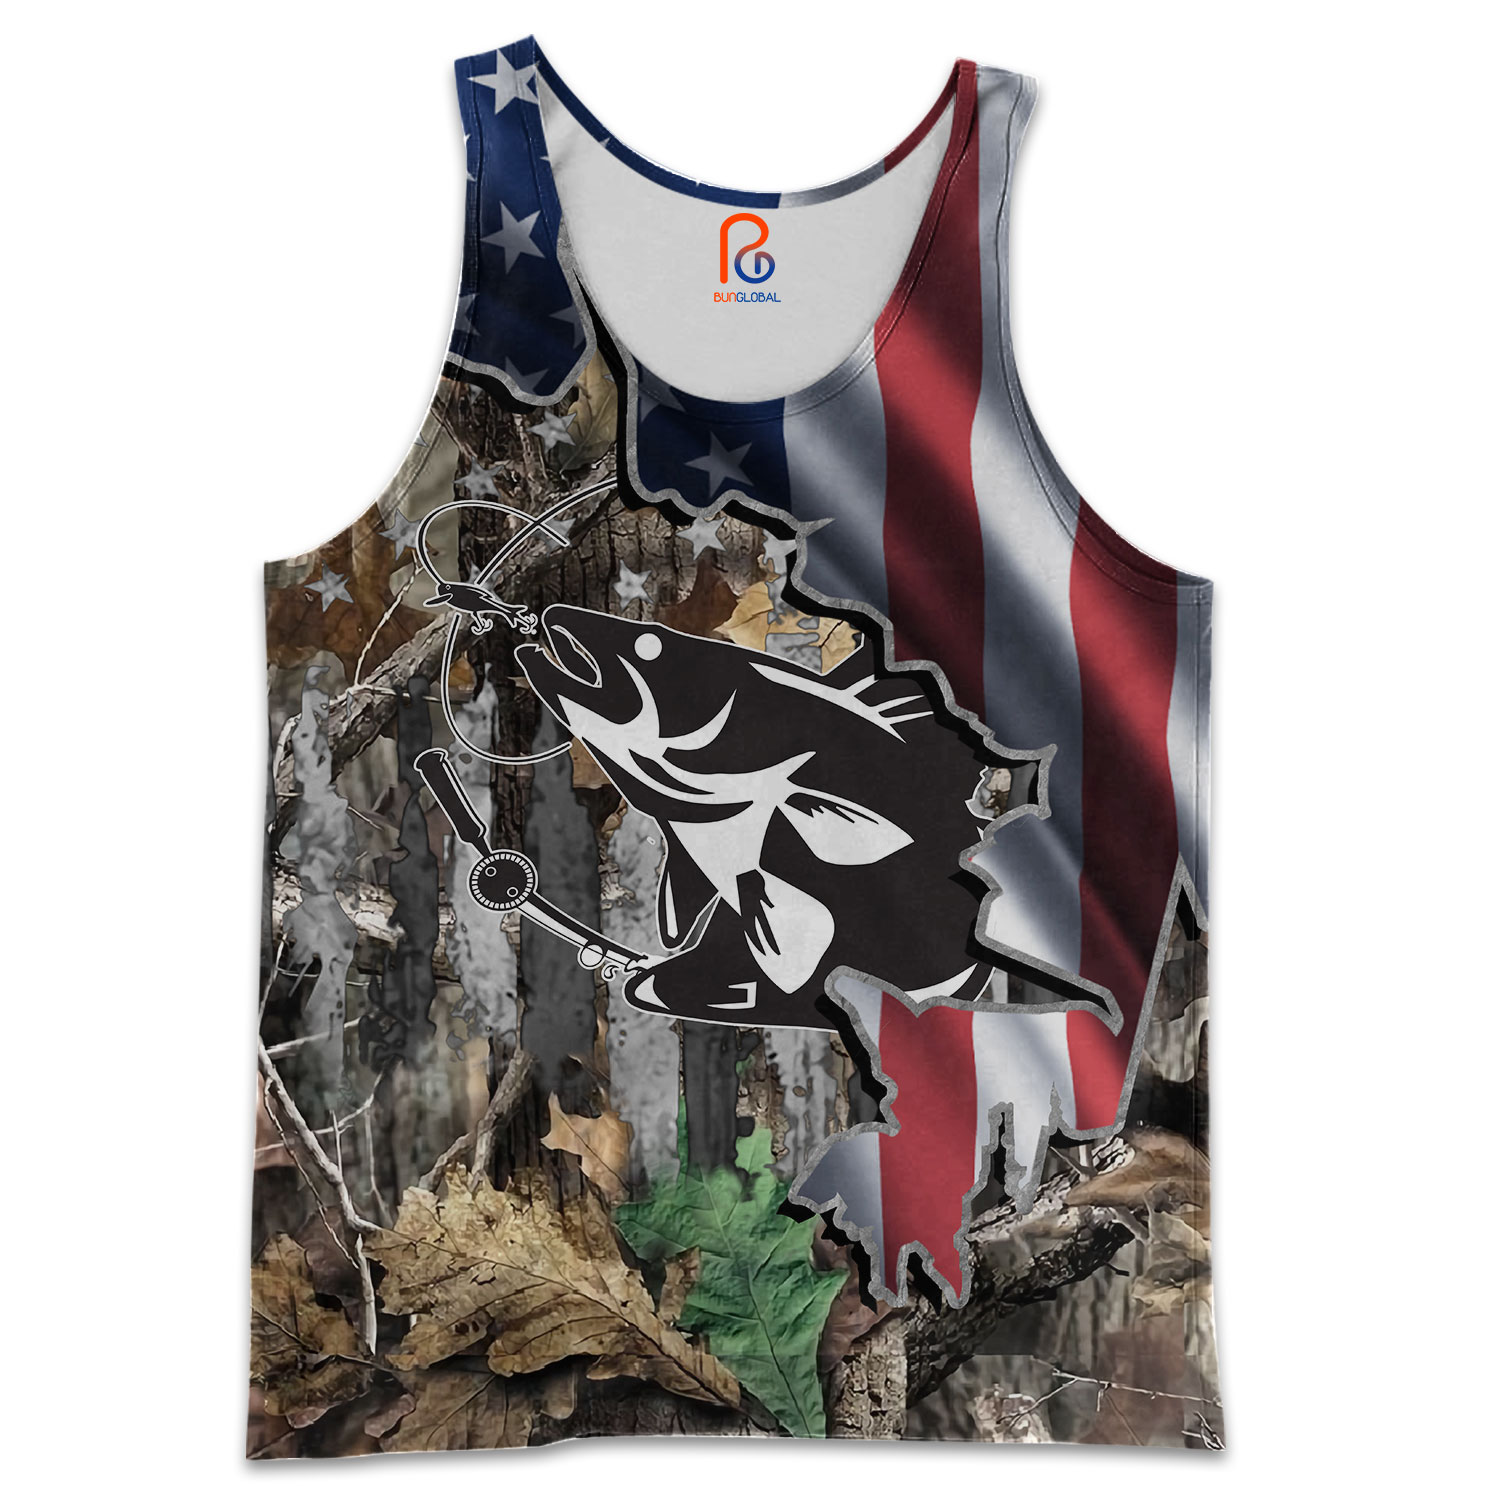 Download Walleye Fishing American Flag 3D All Over Printed Shirts ...